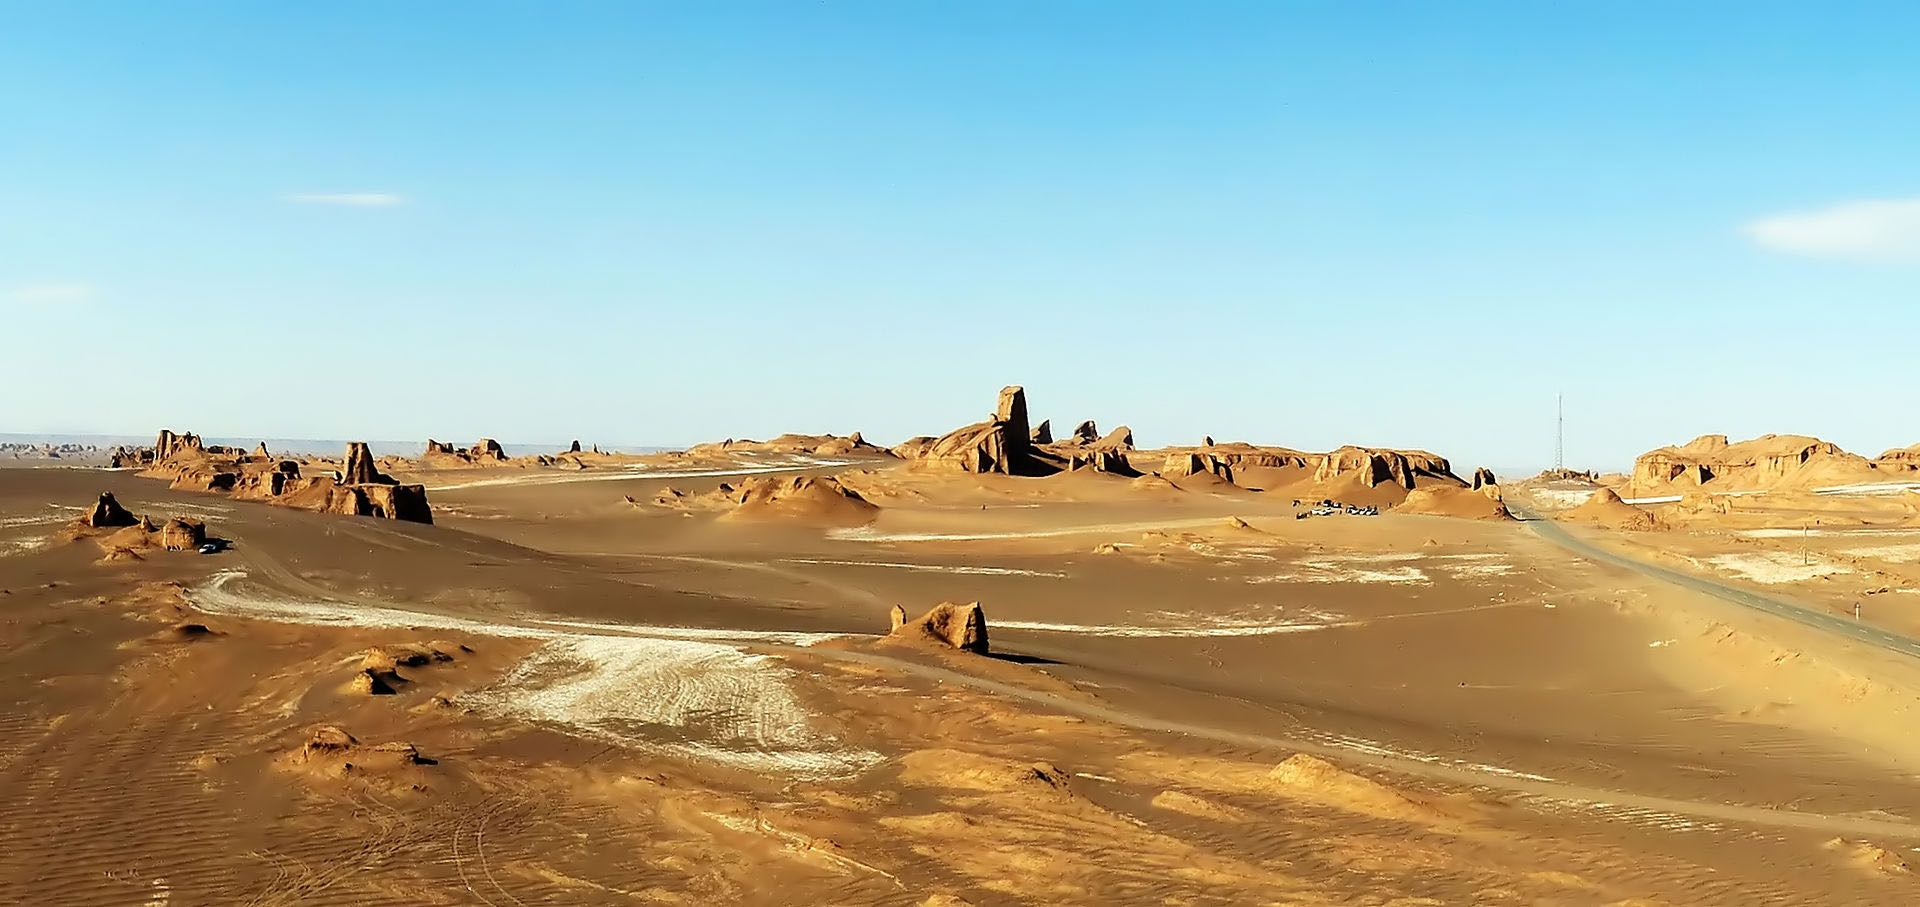 The Lut Desert is a large salt desert known for its unique and diverse collection of desert land forms. Photo by Hadi Karimi, CC BY-SA 3.0.